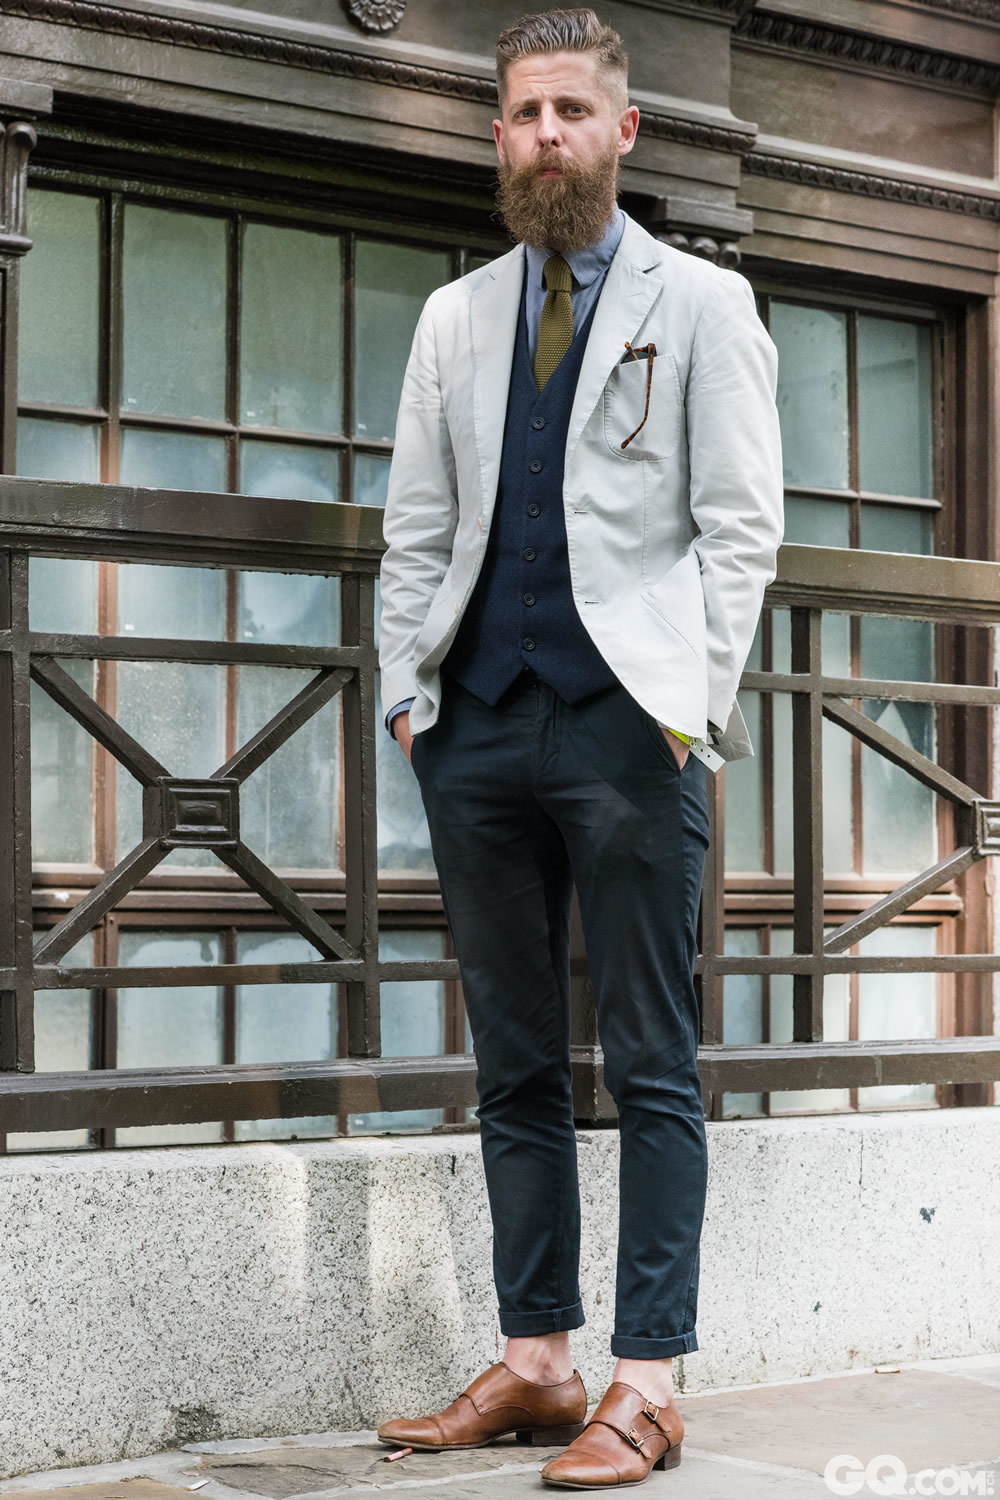 Paul  All look: Hardy Amies       Shoes: Office 	Sunglasses: Han Kjobenna   	Oldest piece: my waistcoat   	Inspiration: I used to work for Hardy Amies so I wanted to honor his heritage with a very 	typical London look. (我之前为Hardy Amies工作,所以我想遵循他的风格,来一身特别典型的伦敦范儿。)